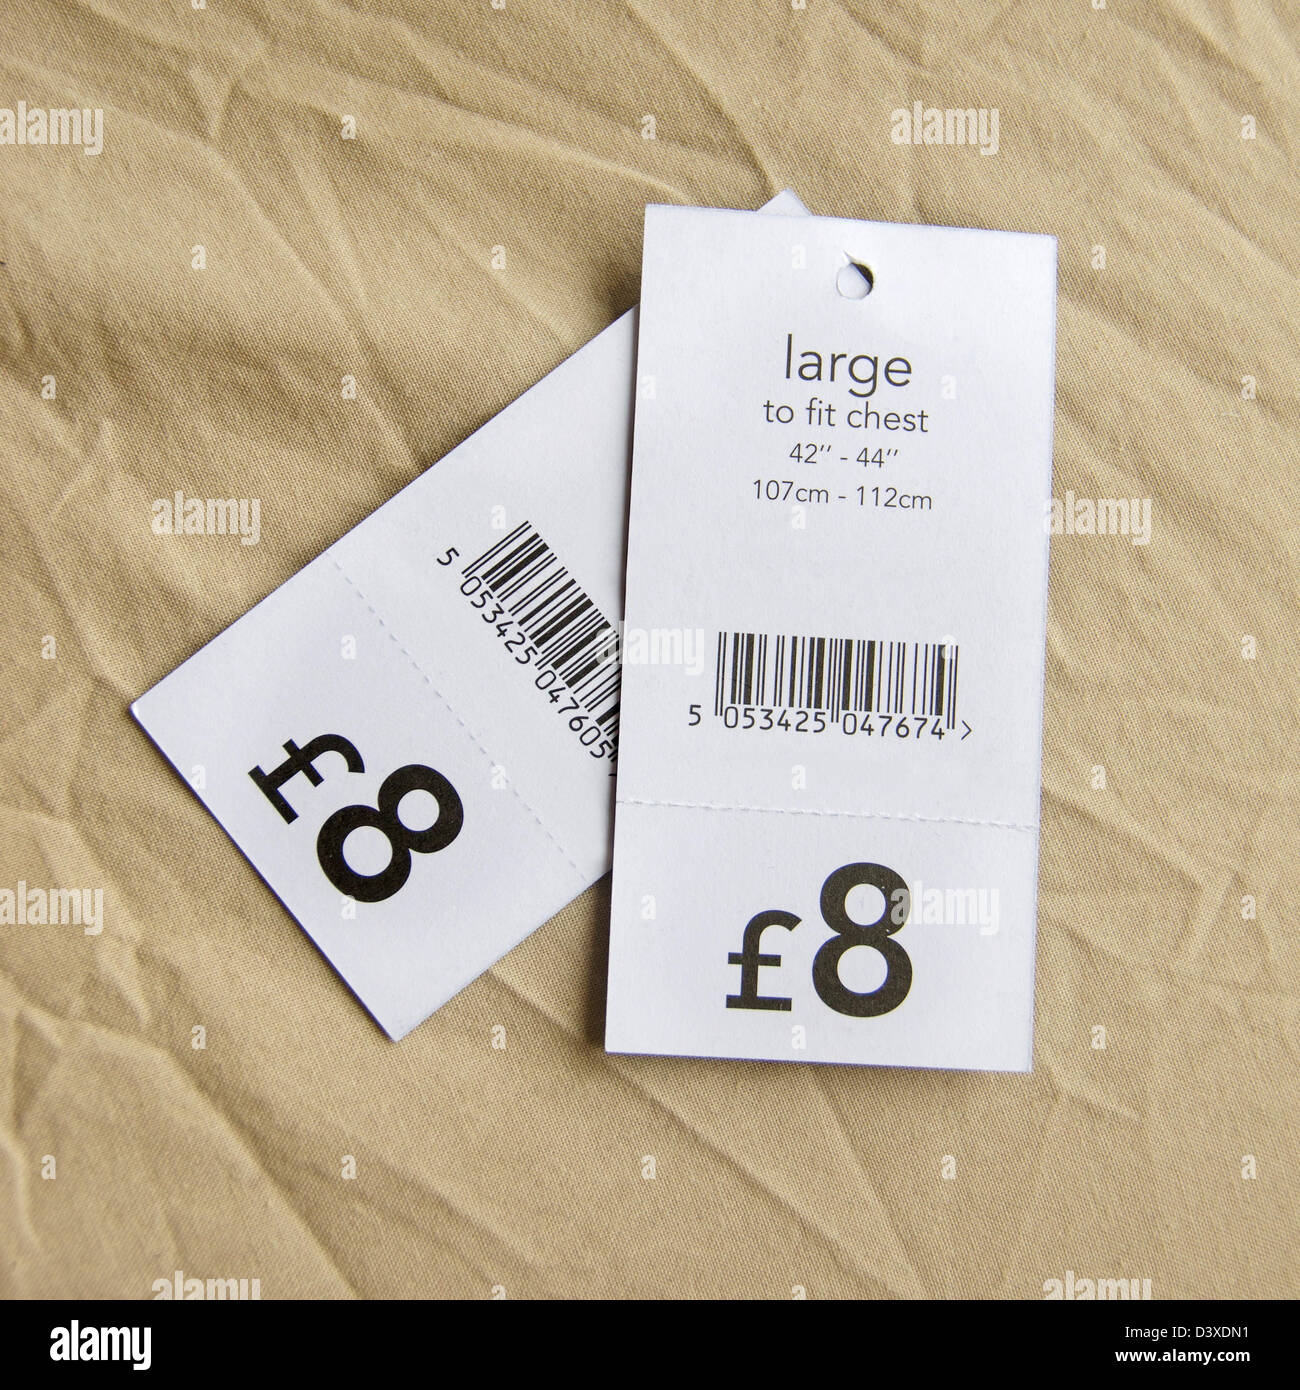 How can I reuse or recycle price tags from clothes? | How ... |Price Tags For Clothing